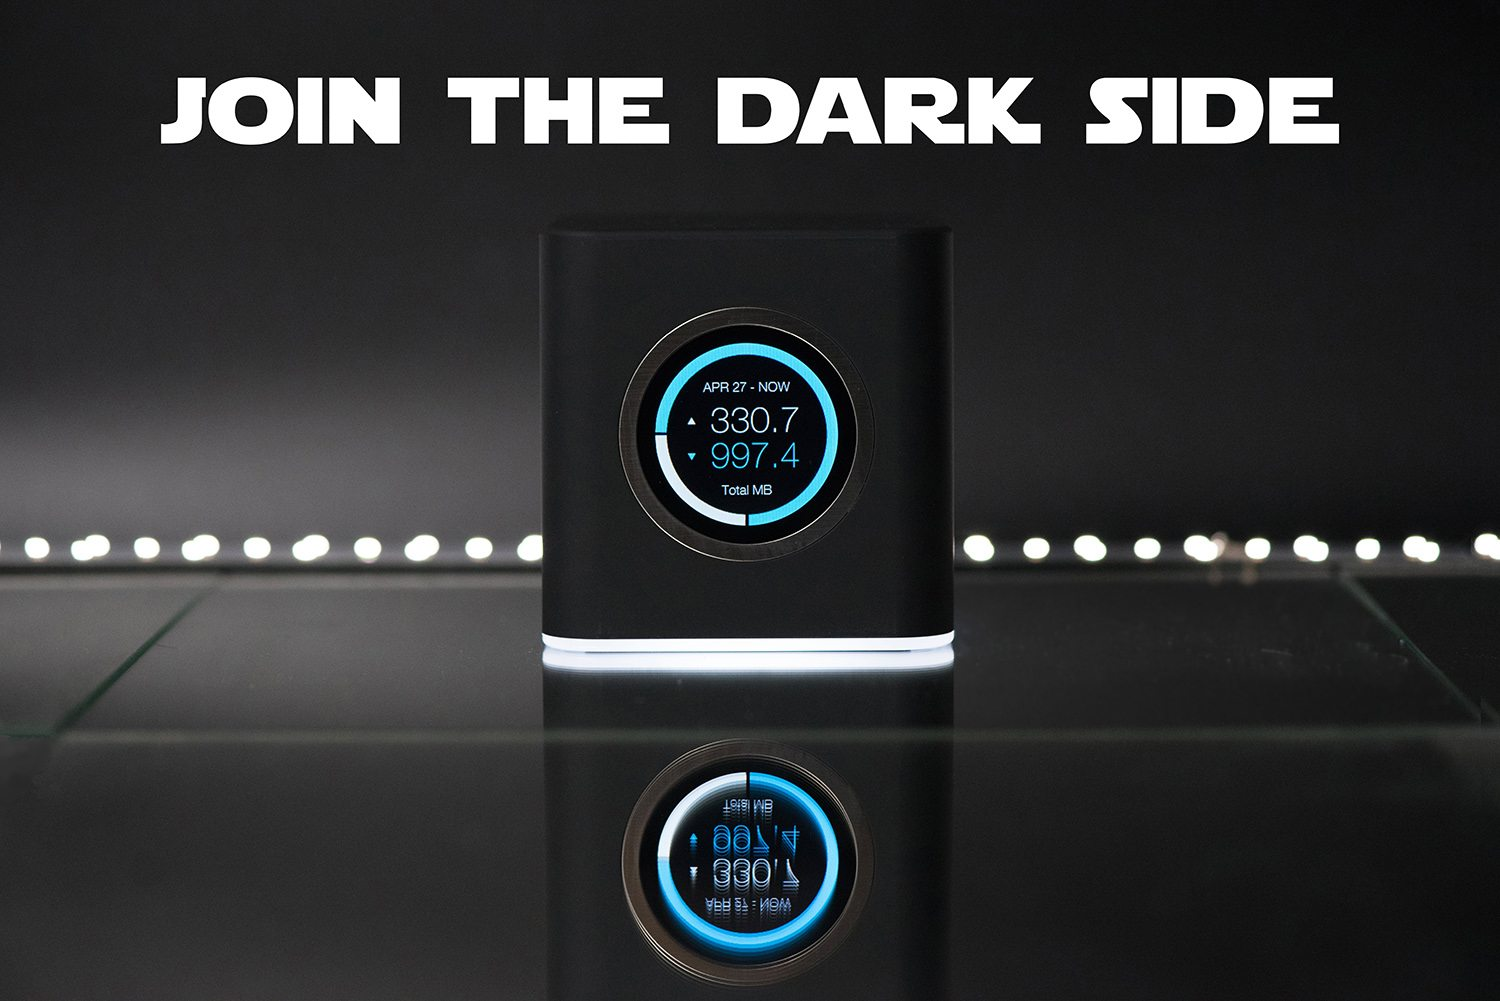 Special edition AmpliFi mesh router in black for Star Wars Day